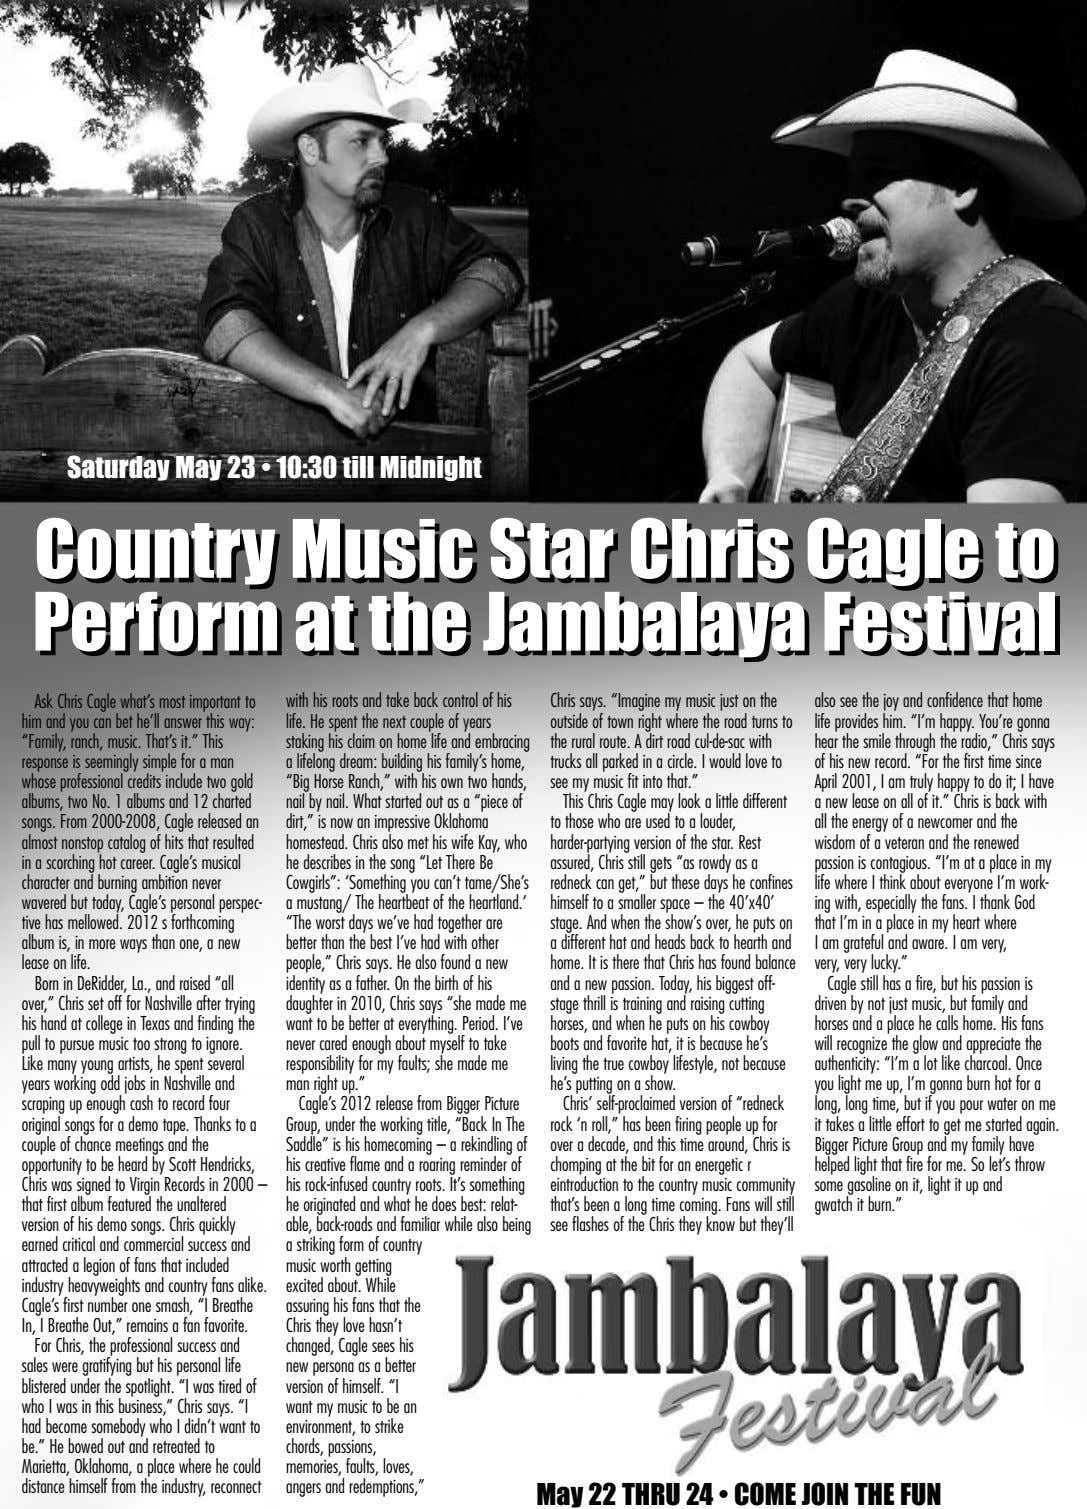 Saturday May 23 • 10:30 till Midnight Country Country Music Music Star Star Chris Chris